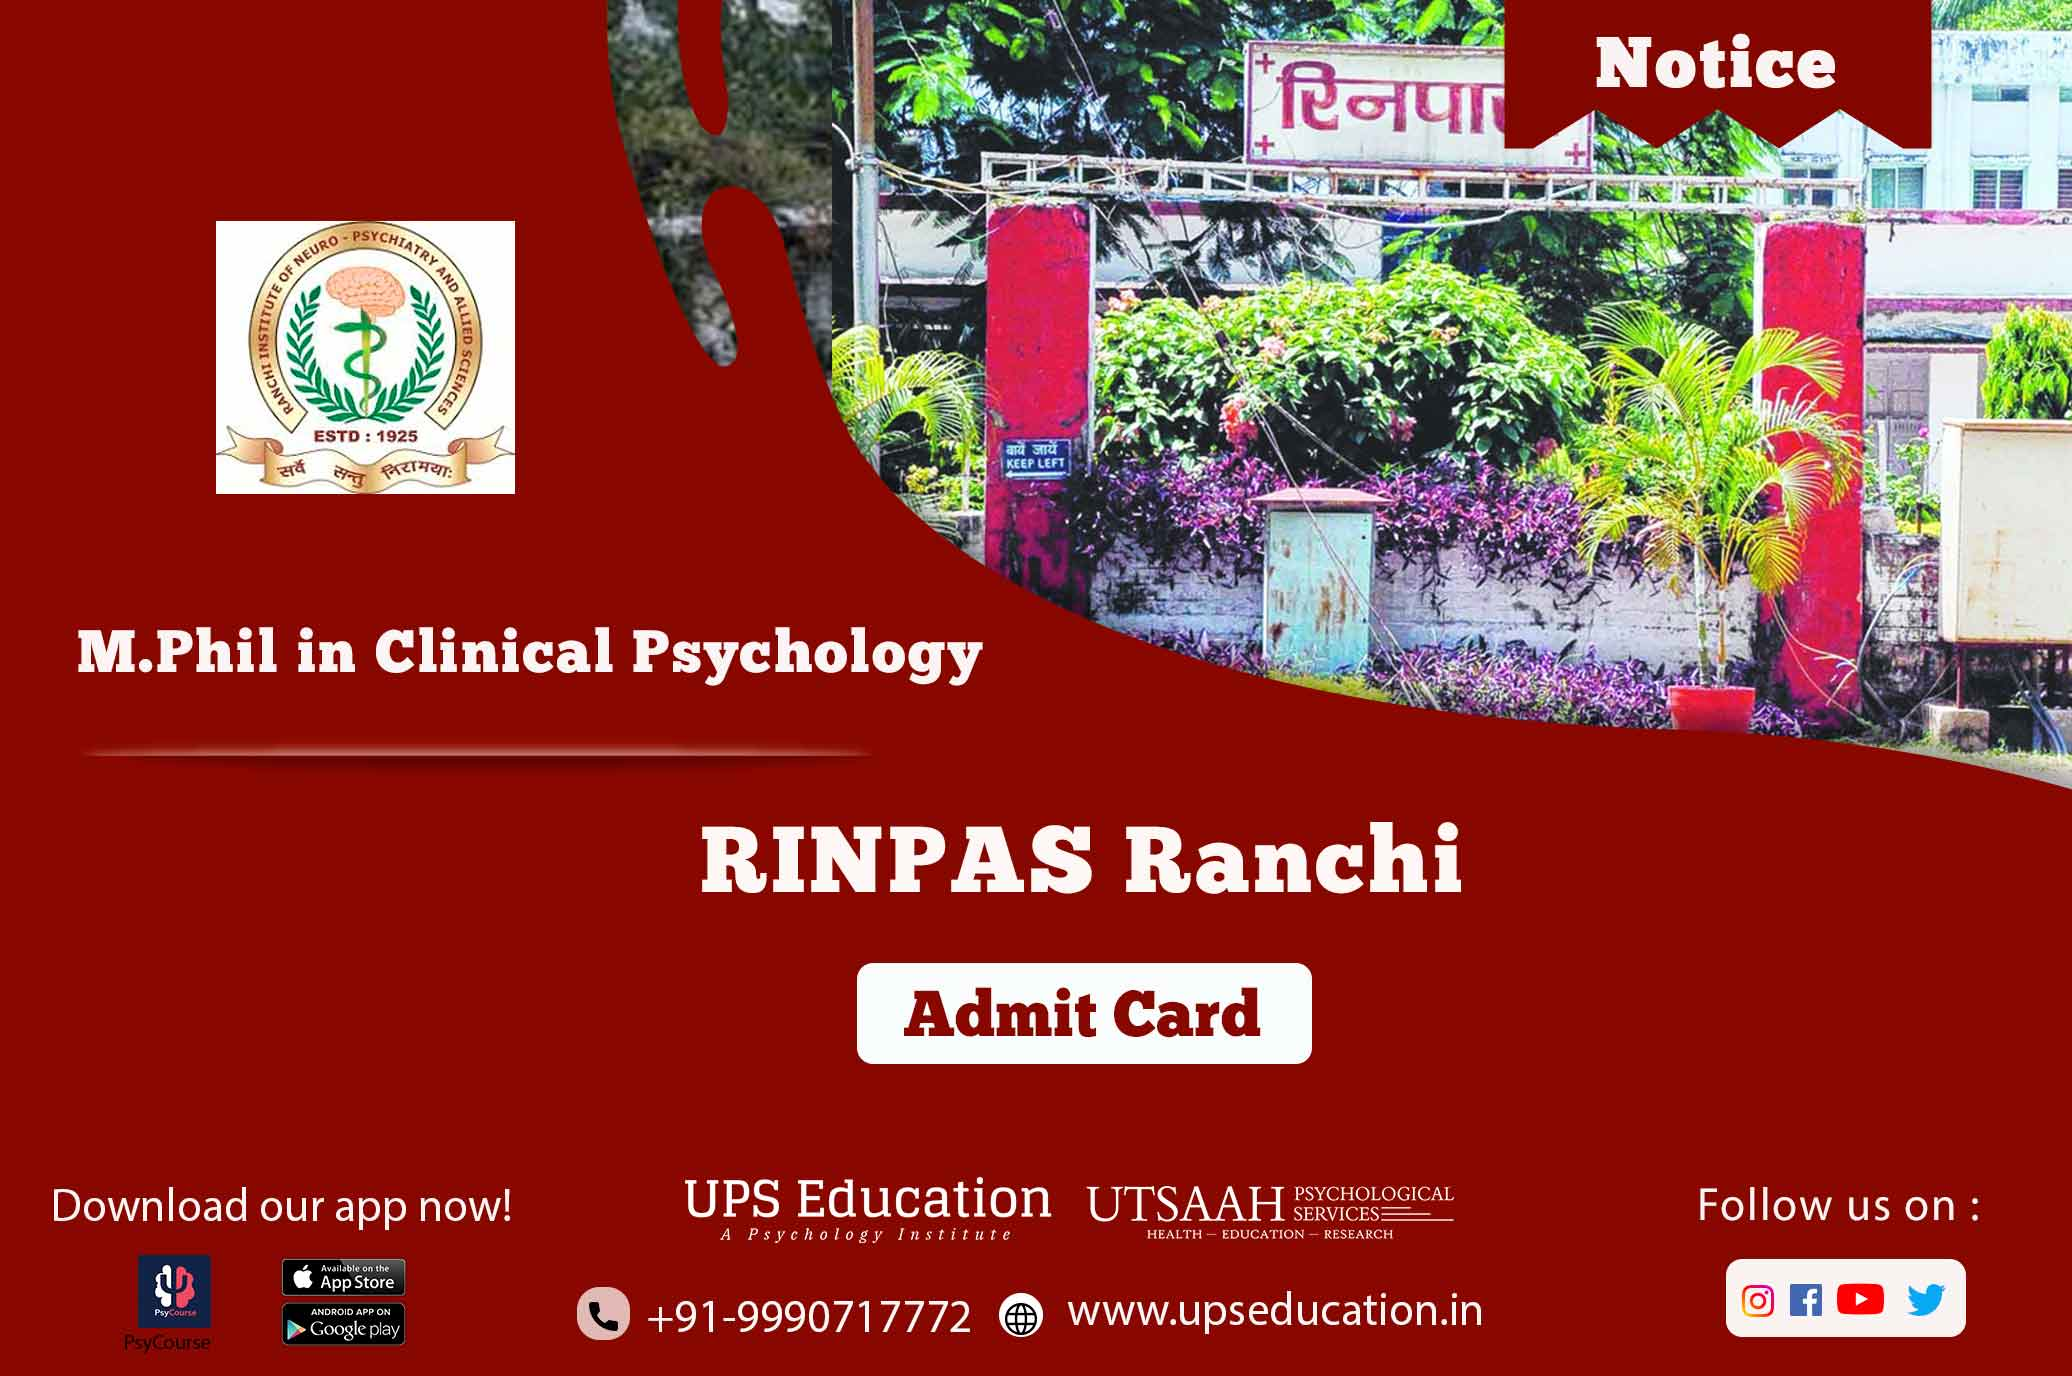 RINPAS Admit Card for M.Phil in Clinical psychology